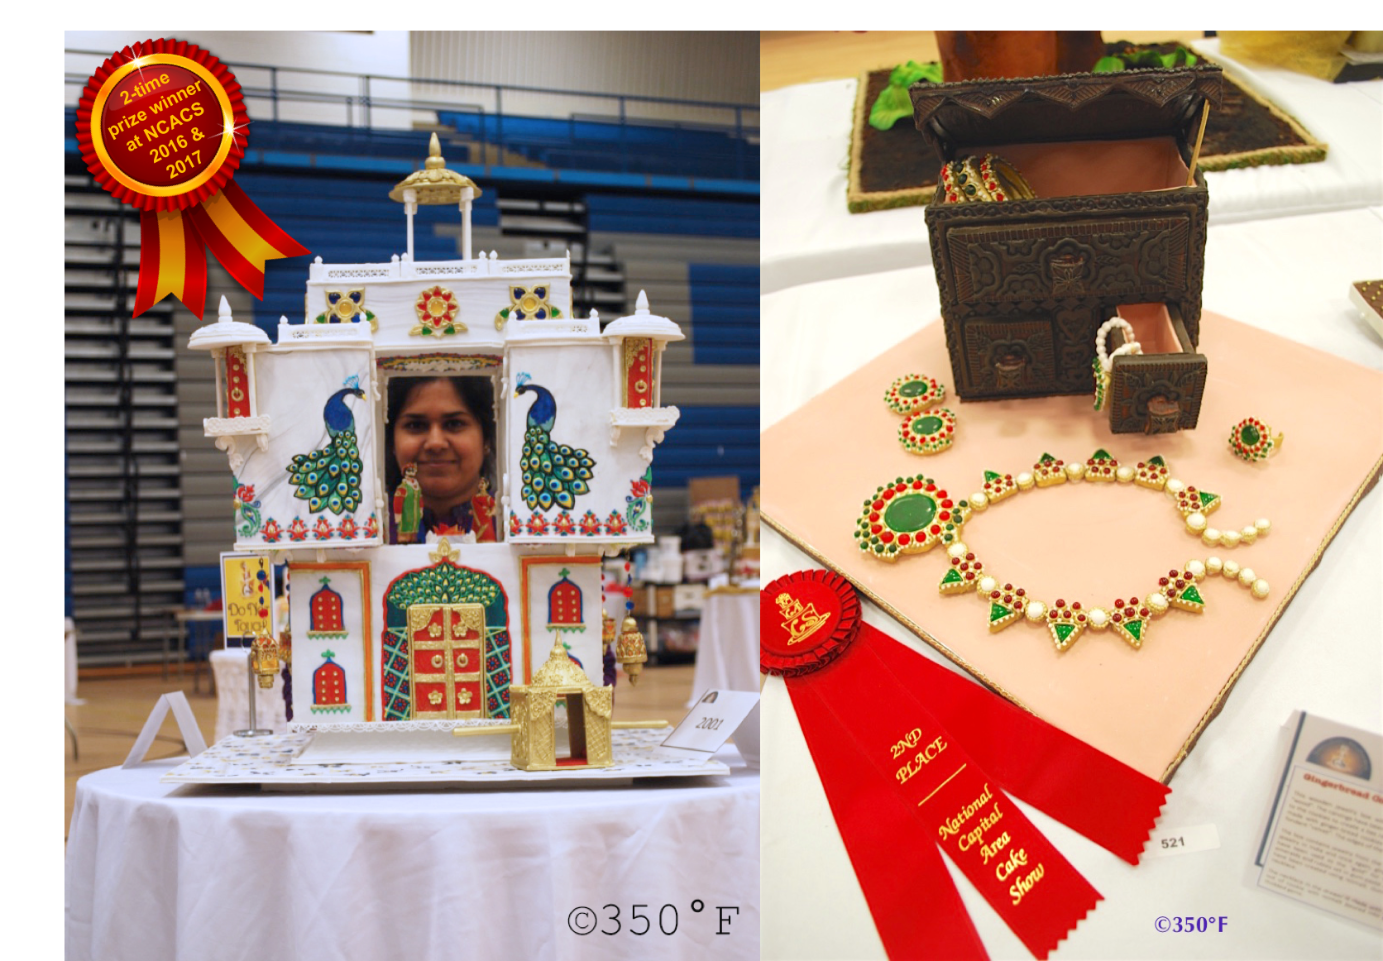 Winner at the National Capital Area Cake Show 2017 in the wedding cake and cookie art categories